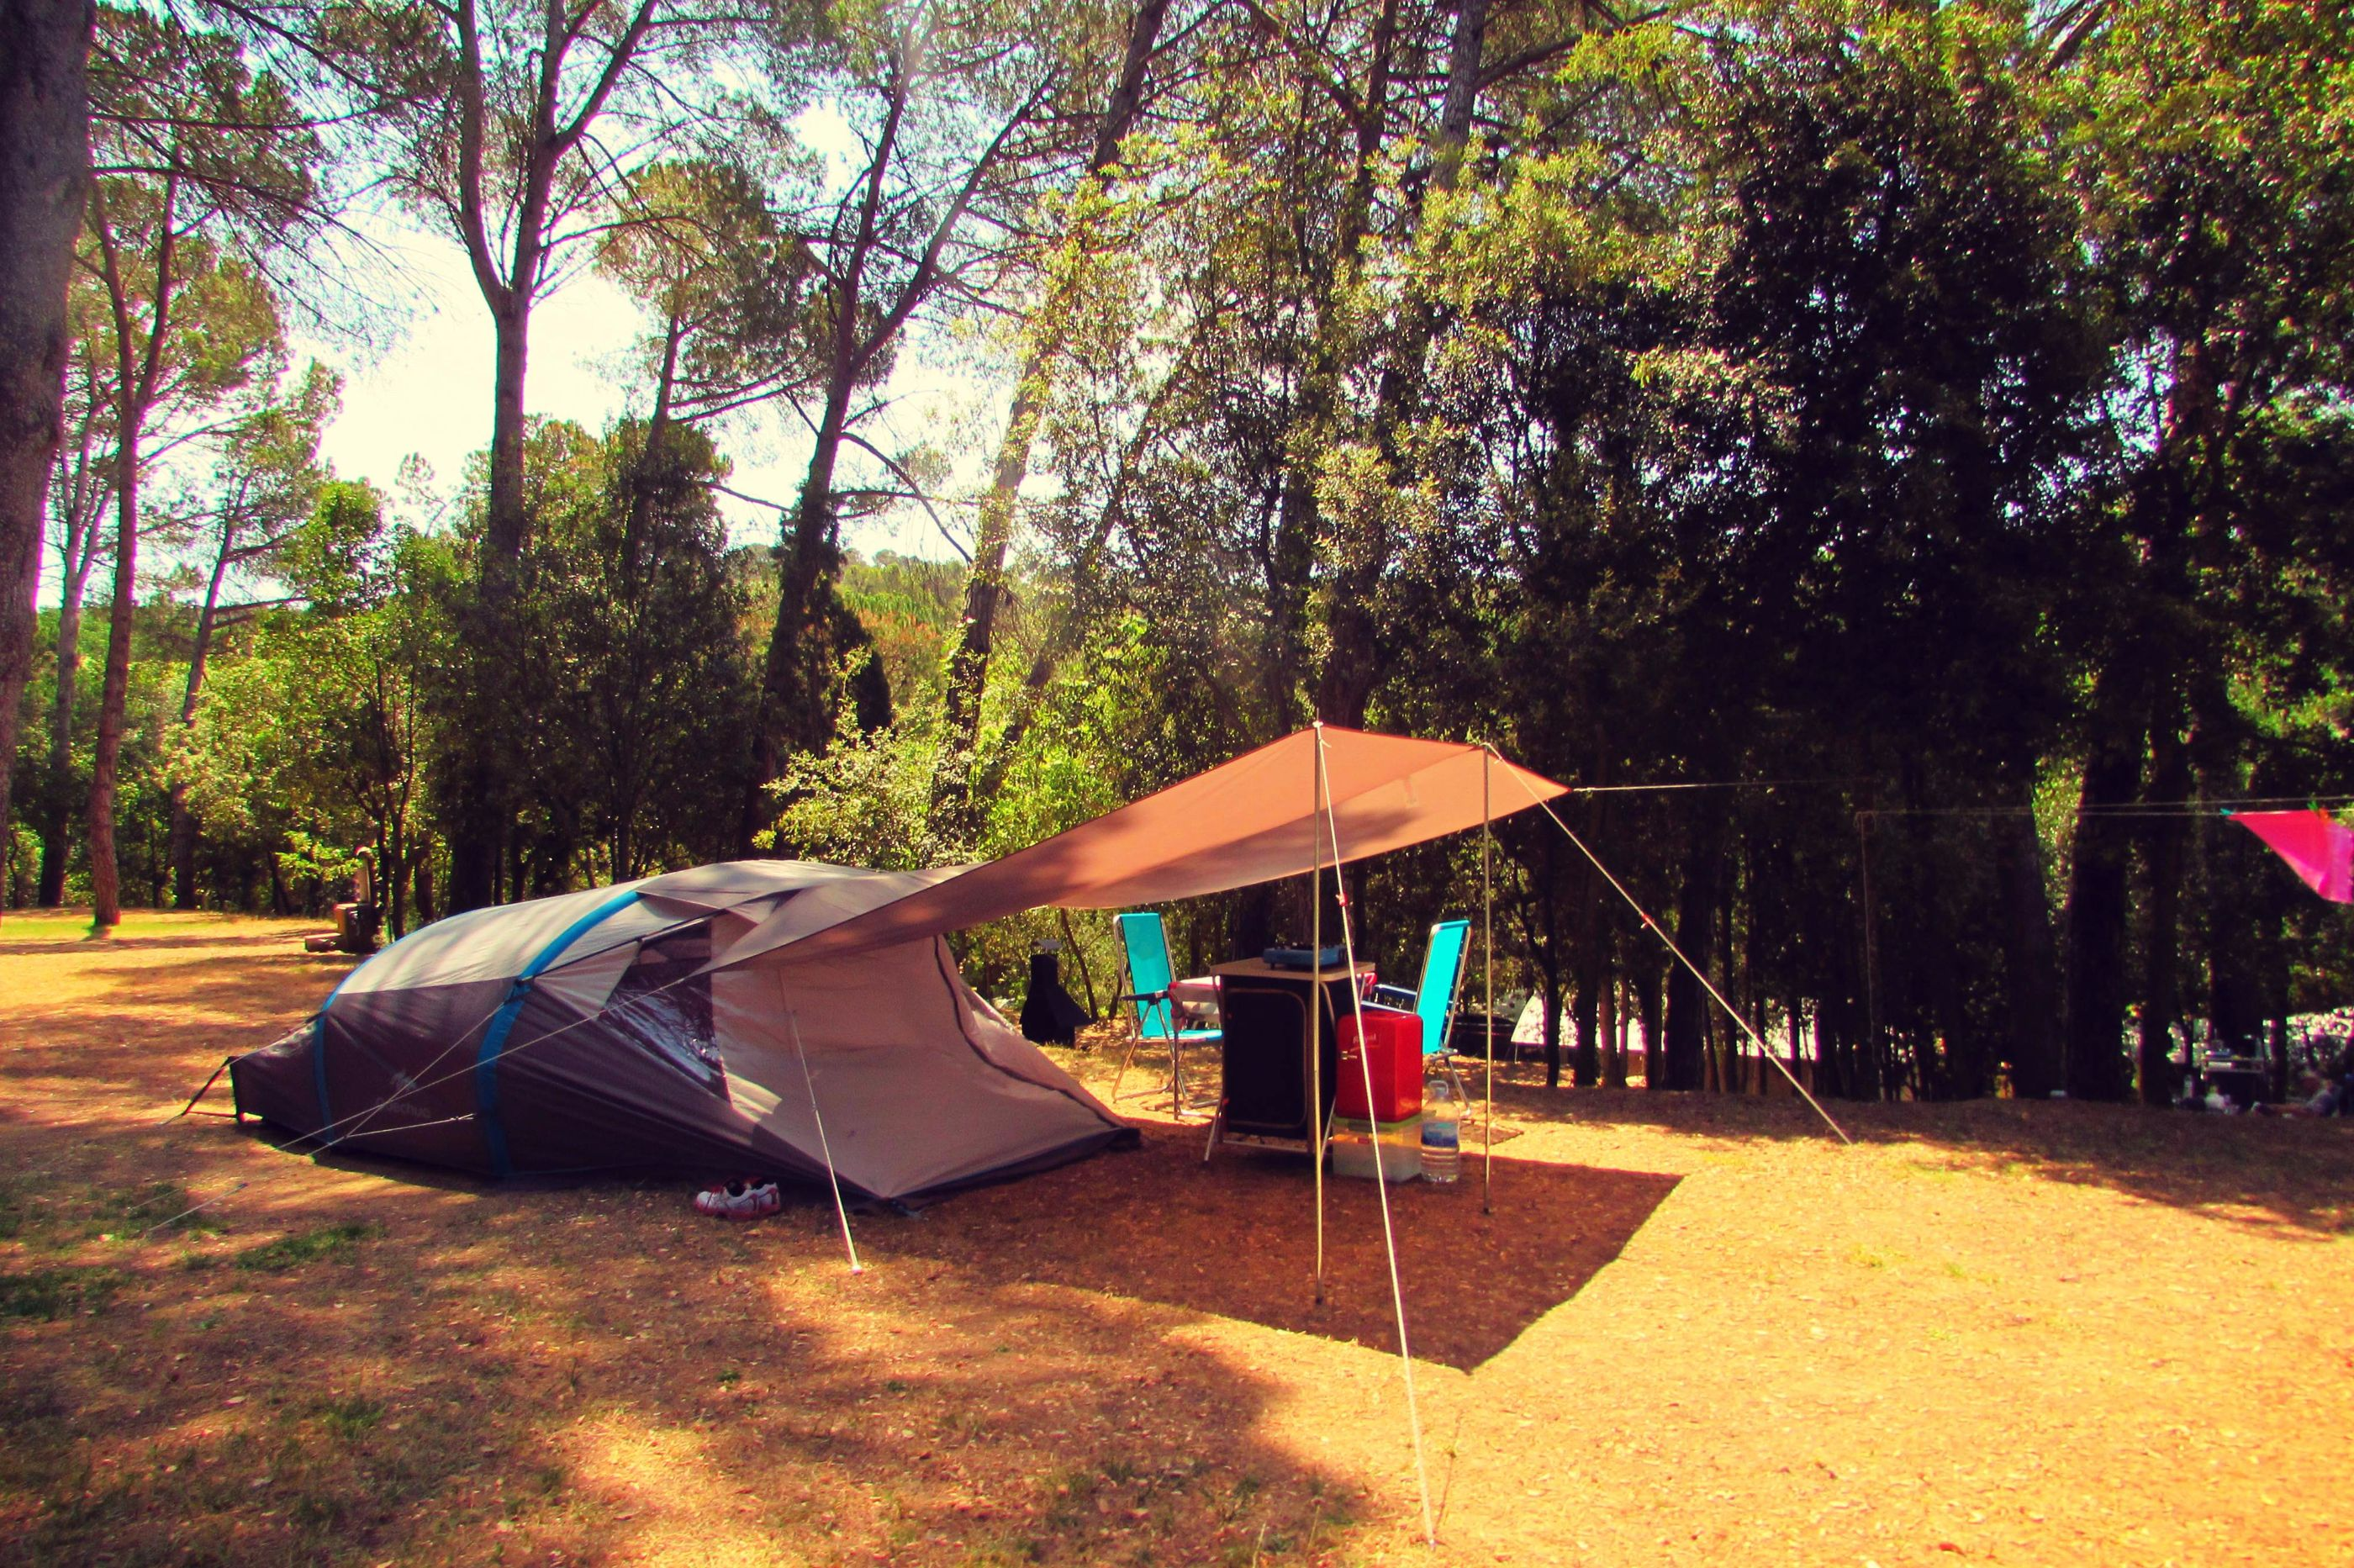 Campng Begur with family tent, Costa Brava, Catalonia